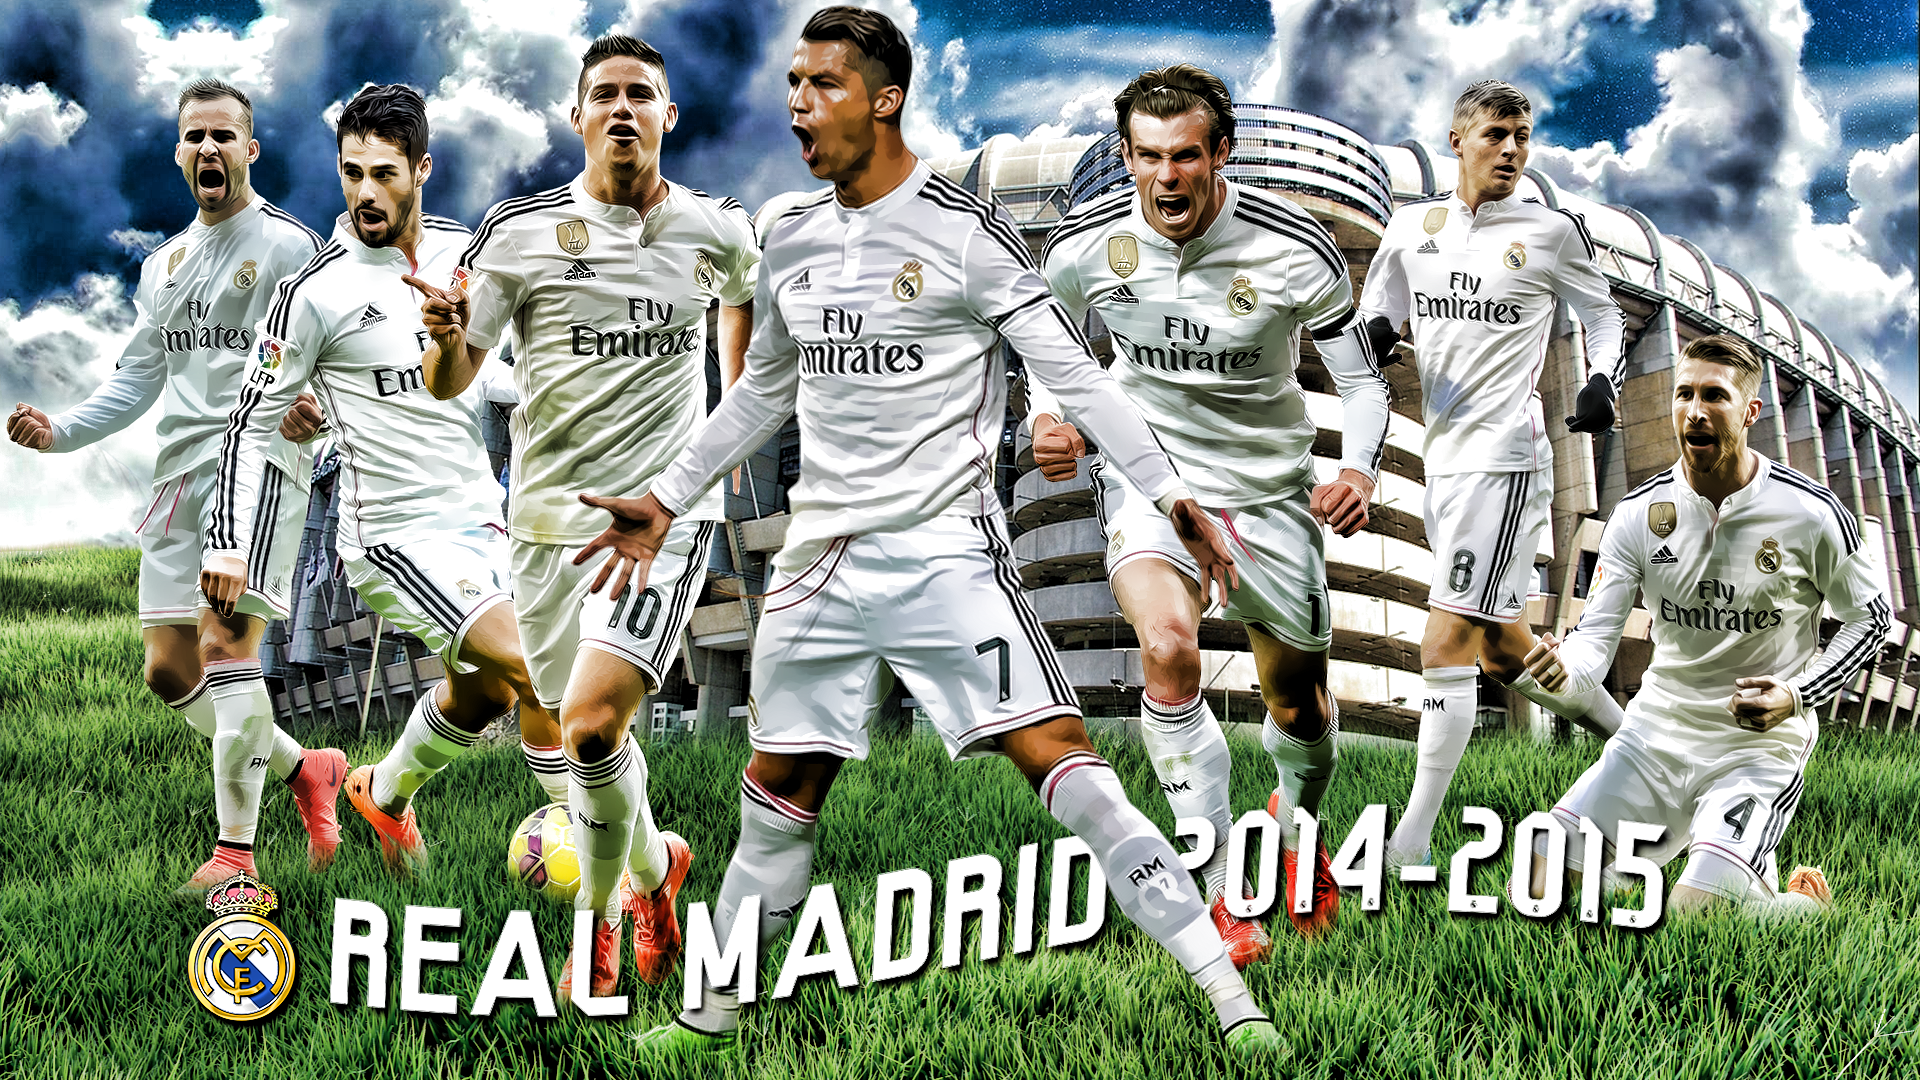 A6fefa8a588 Real Madrid 2014 2015 Squad Wallpaper Football